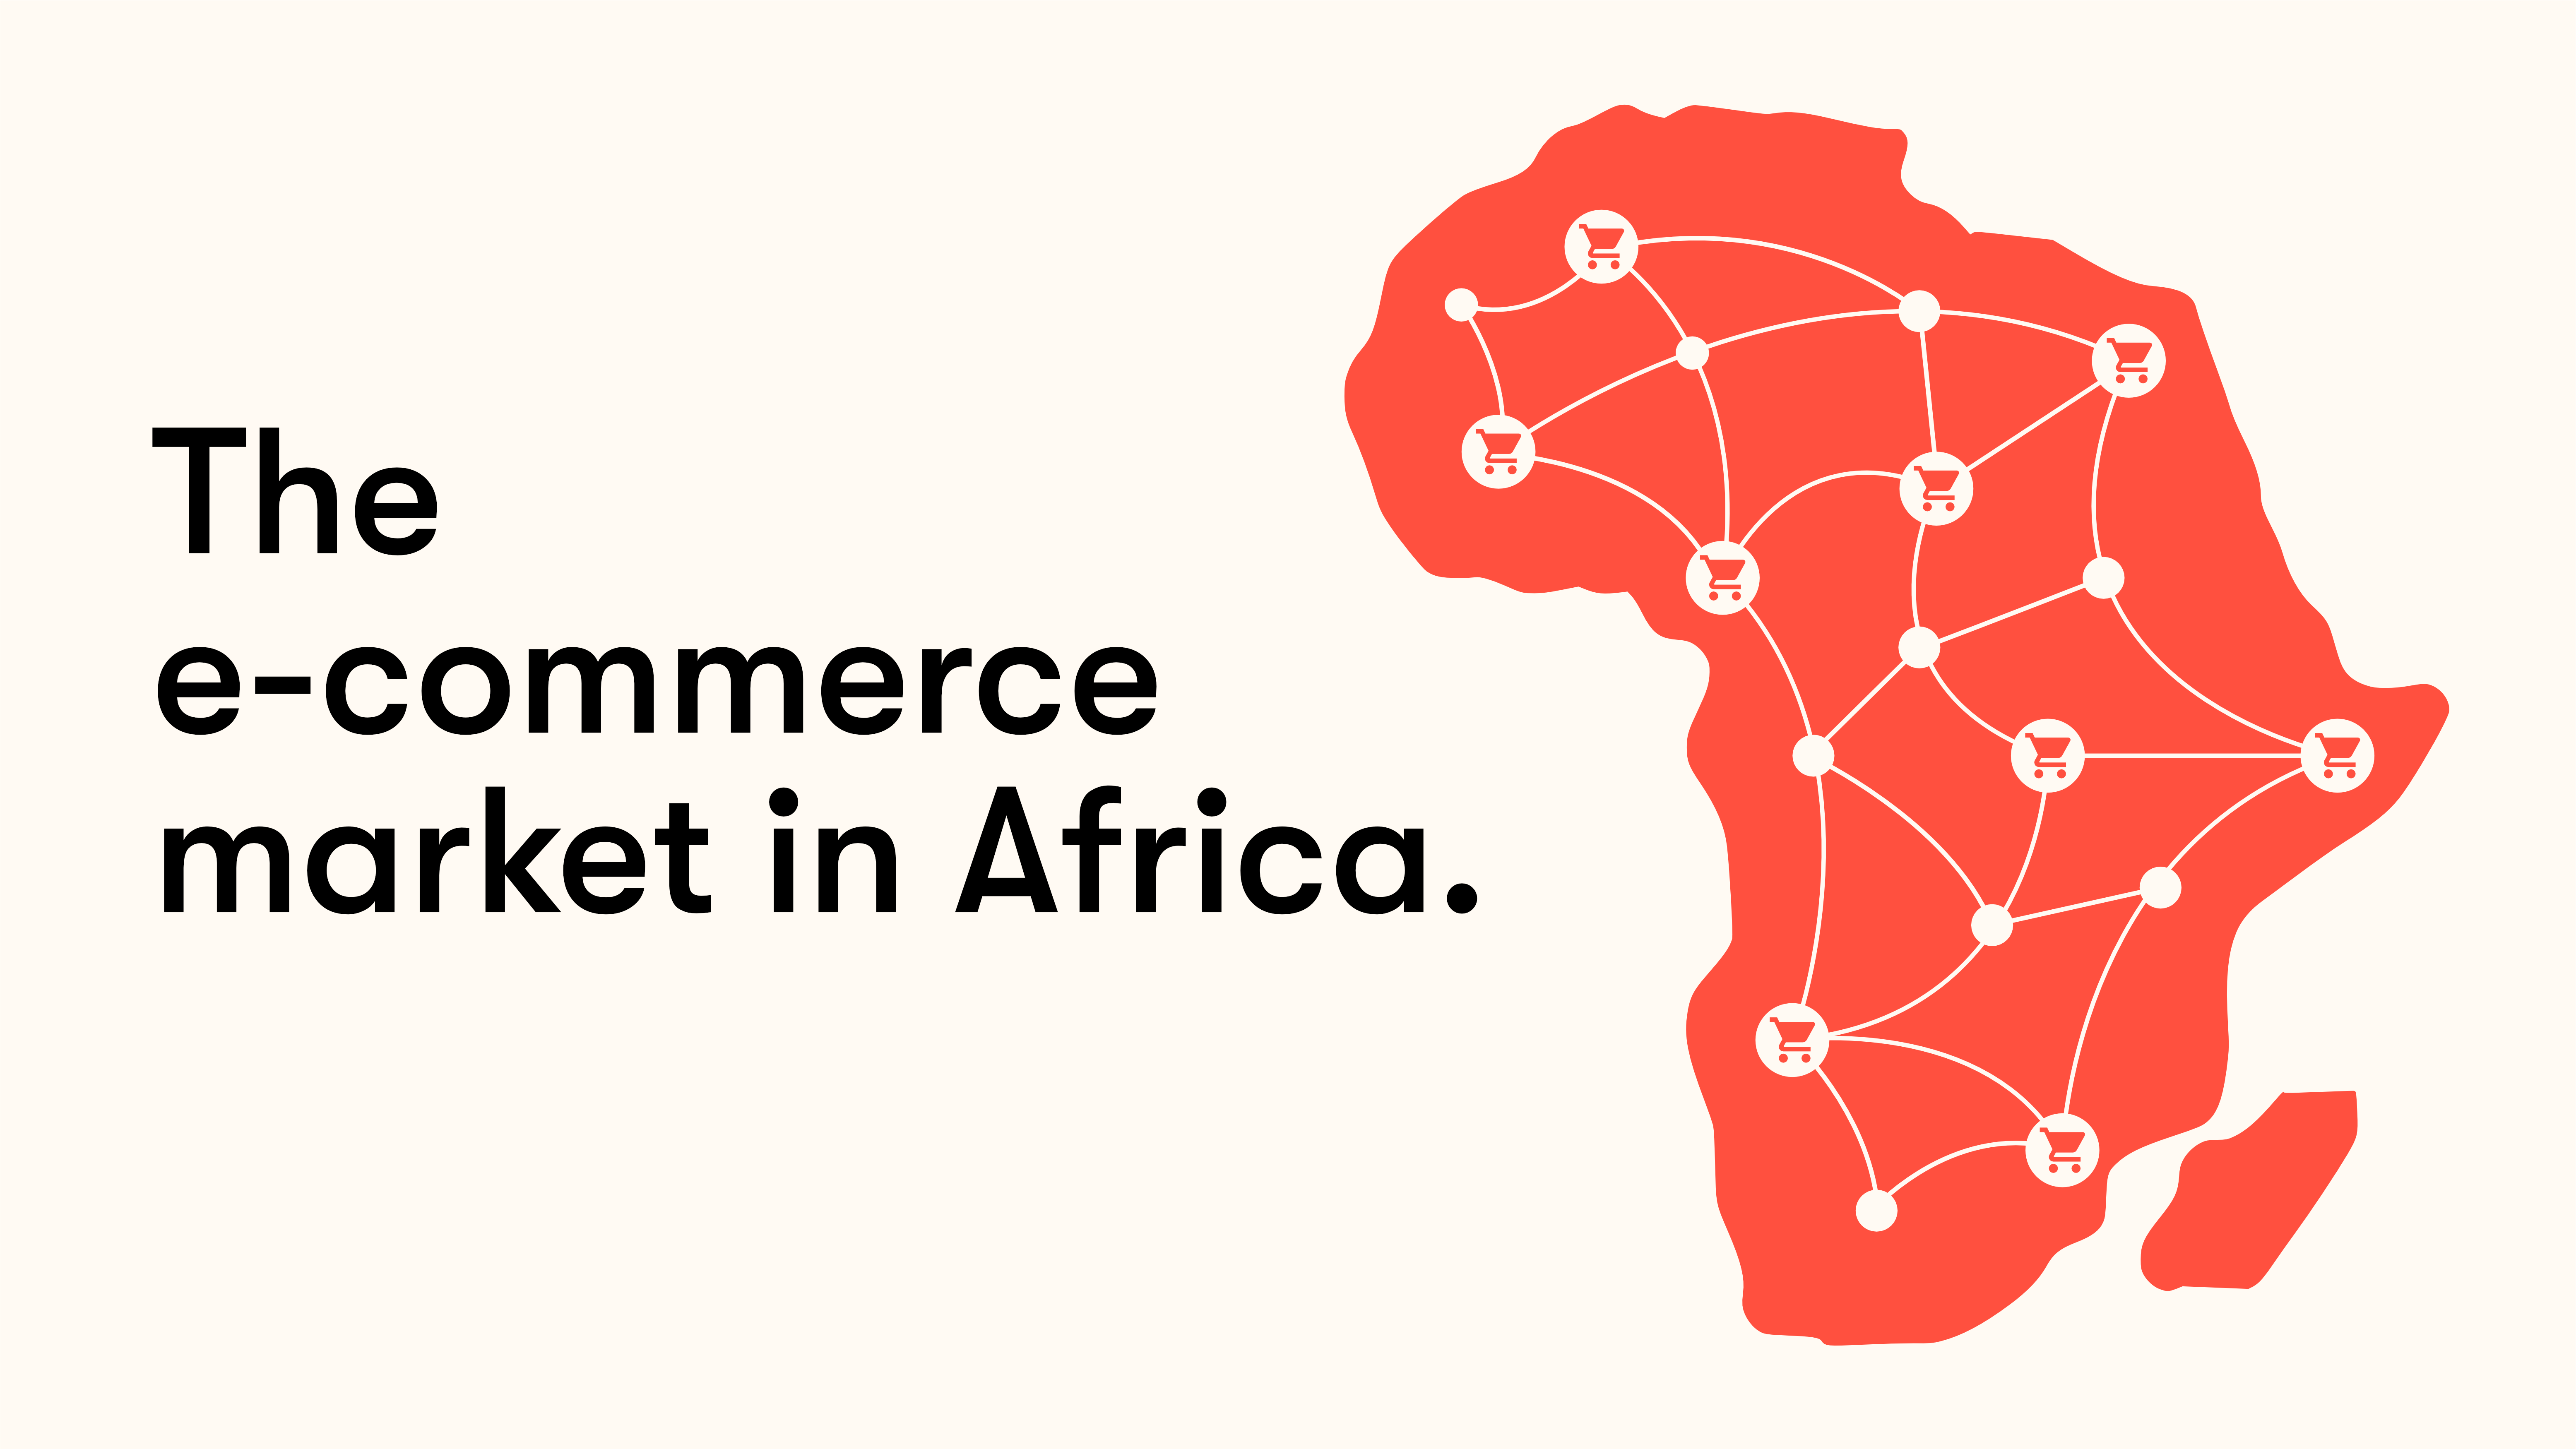 The e-commerce market in Africa